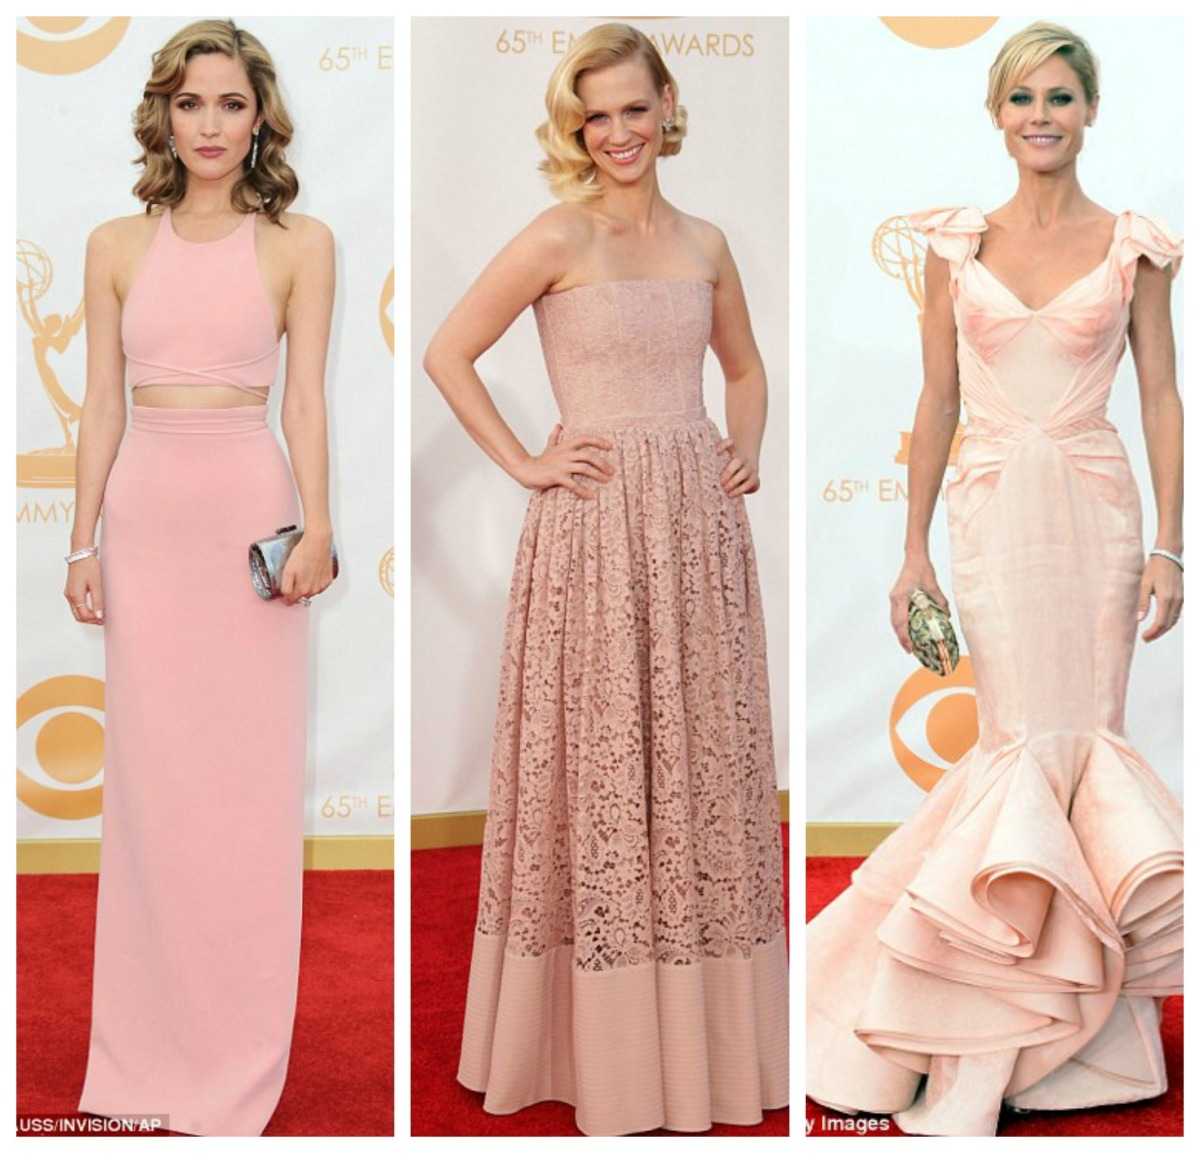 Fashion Fix: The 2013 Emmy Awards